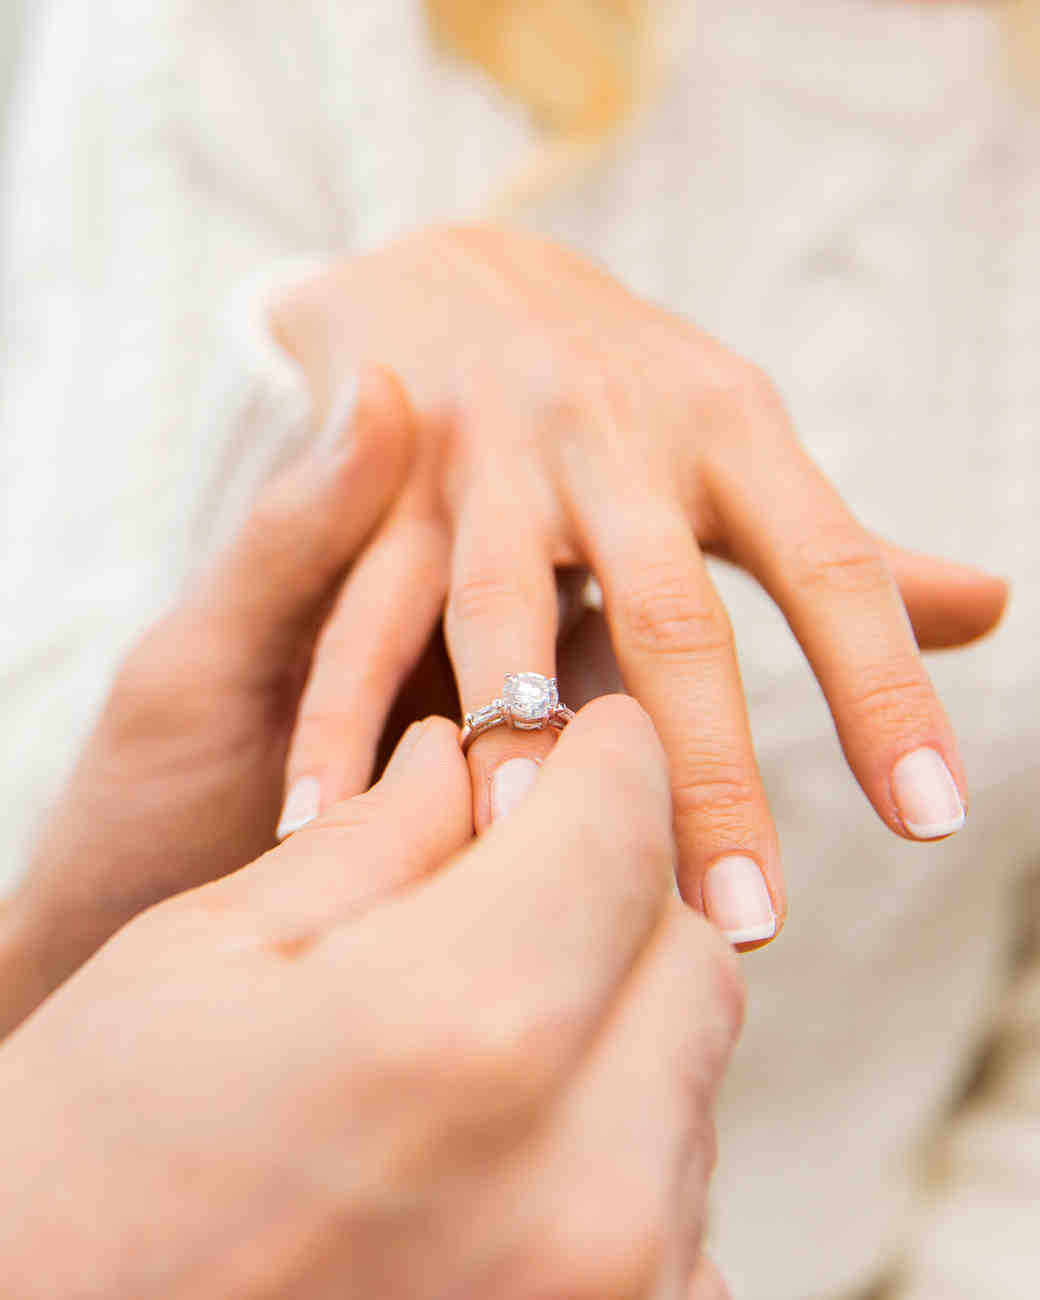 engagement-ring-stock-photo-man-putting-ring-on-womans-hand-1215.jpg